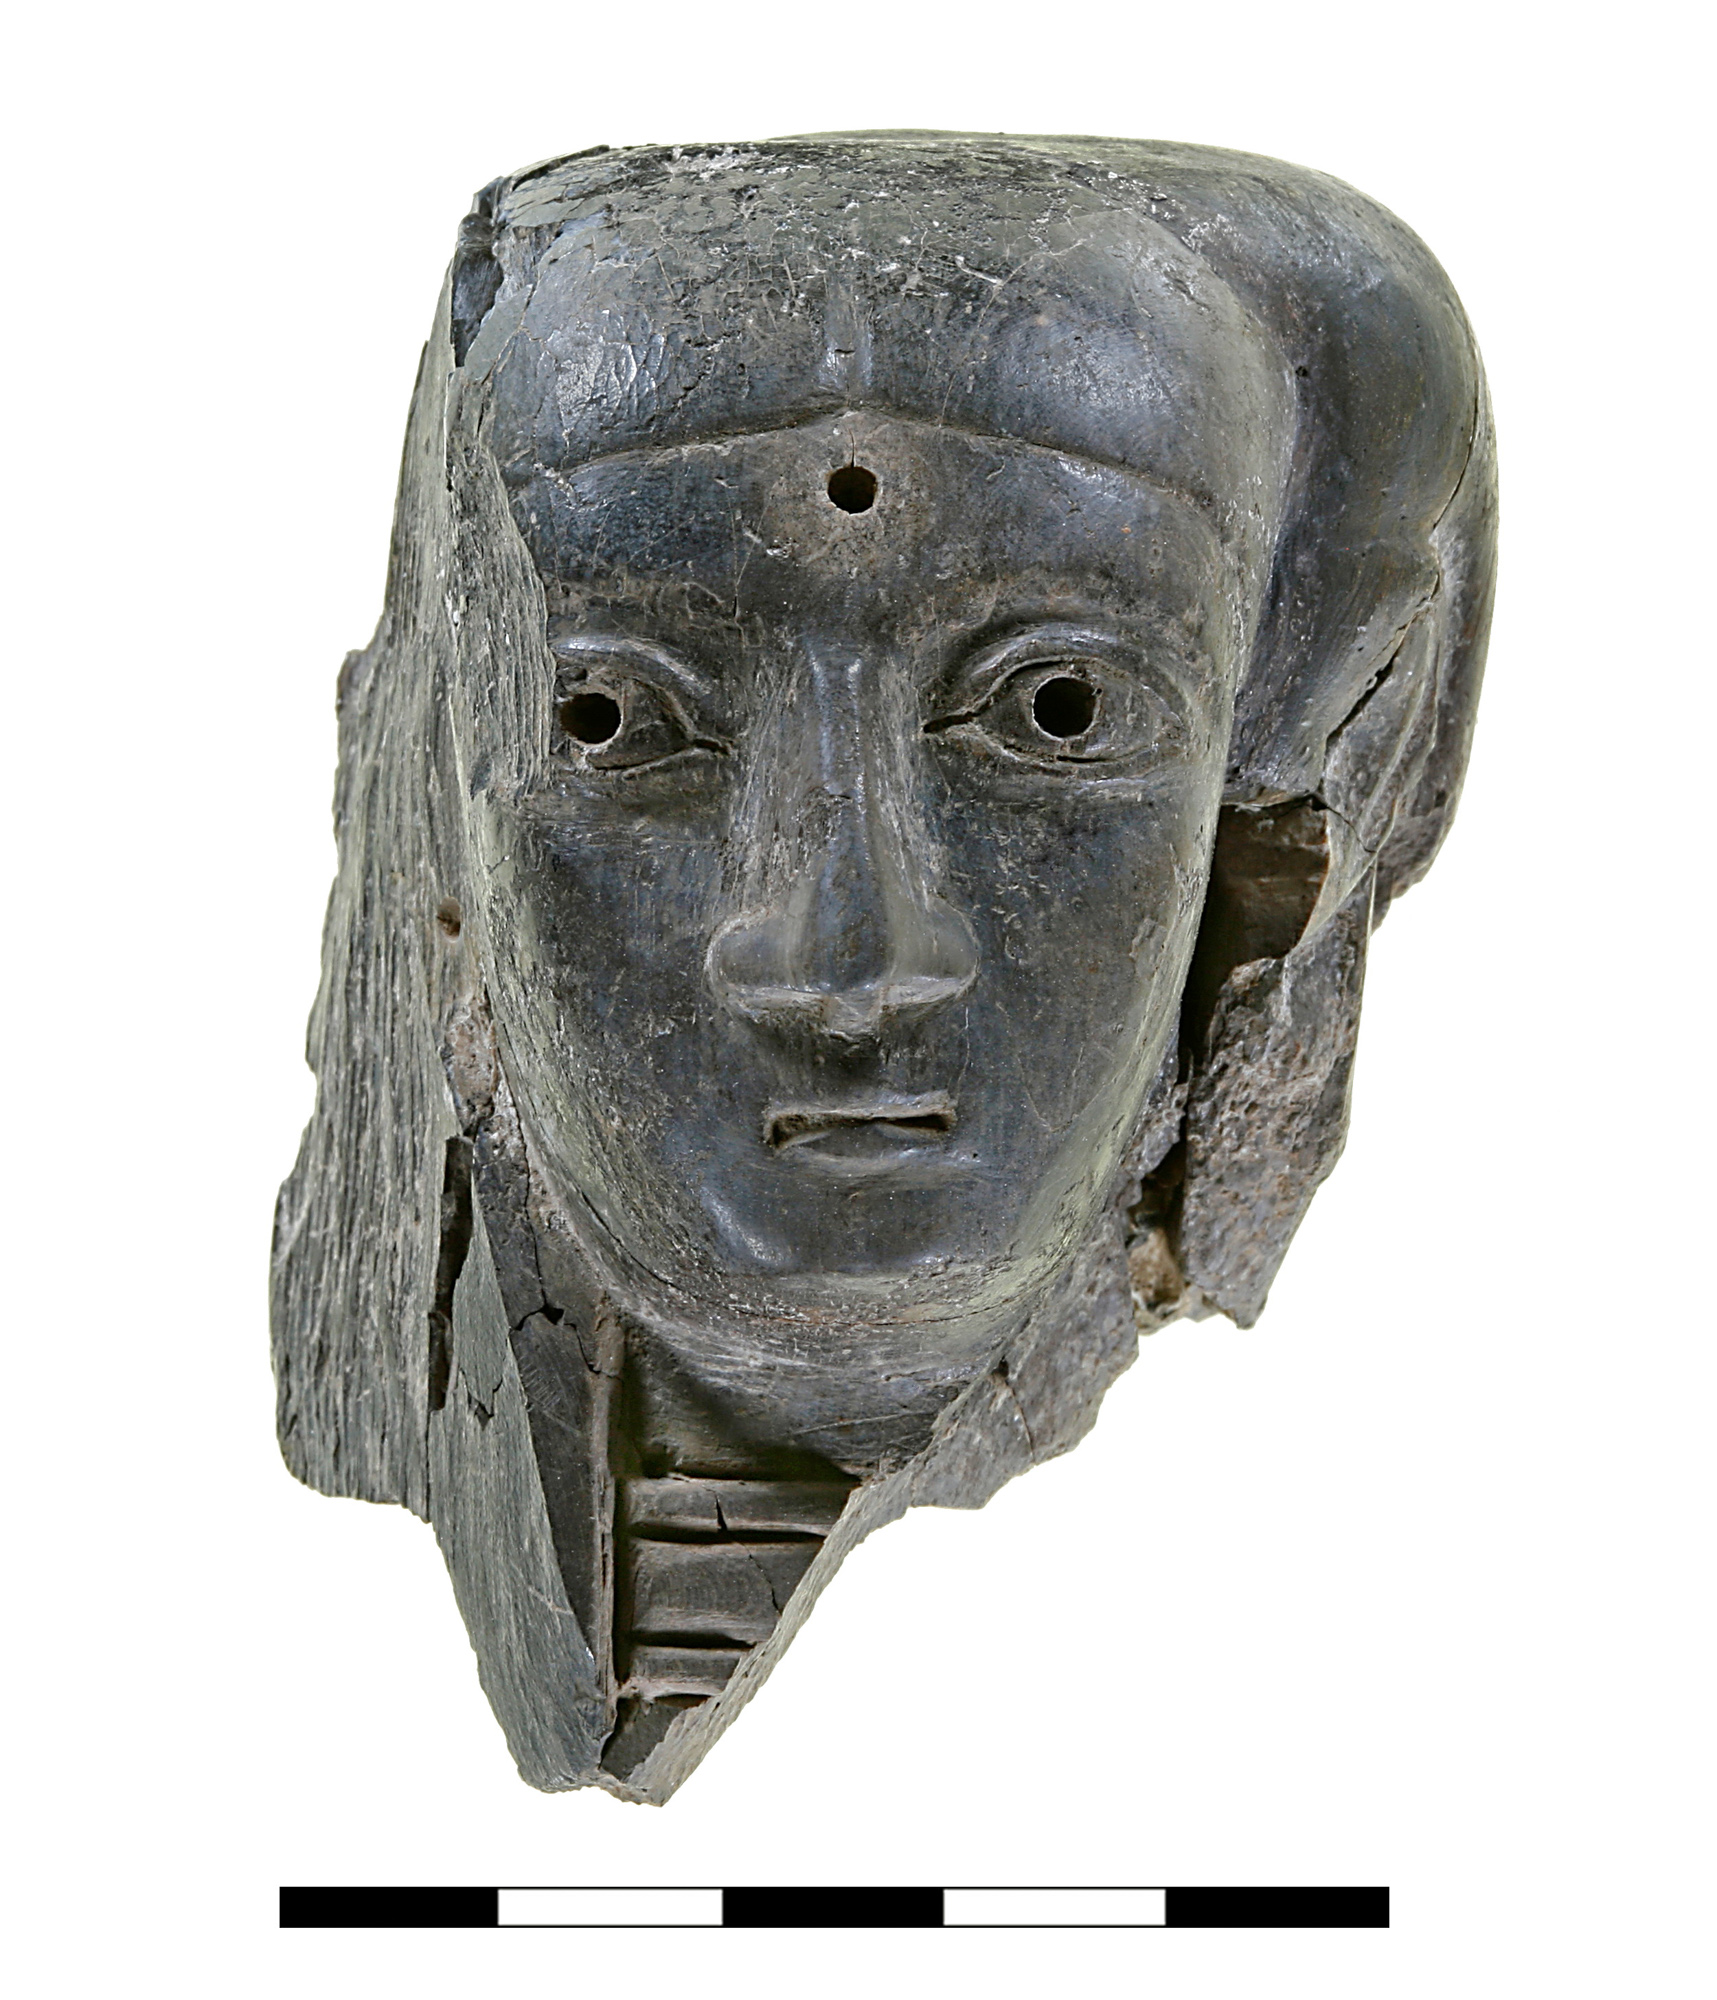 Head of a Canaanite official  made of ivory, found in the Ceremonial Precinct, Building 7050. Only part of this head, which may have belonged to an anthropomorphic statuette, remains, including the face, the left ear, the neck and part of the headdress. Its fragmentary state makes it difficult to establish whether it belonged to a standing or seated figure or perhaps even to a composite creature, such as a sphinx. It is most likely dated to the Late Bronze Age.